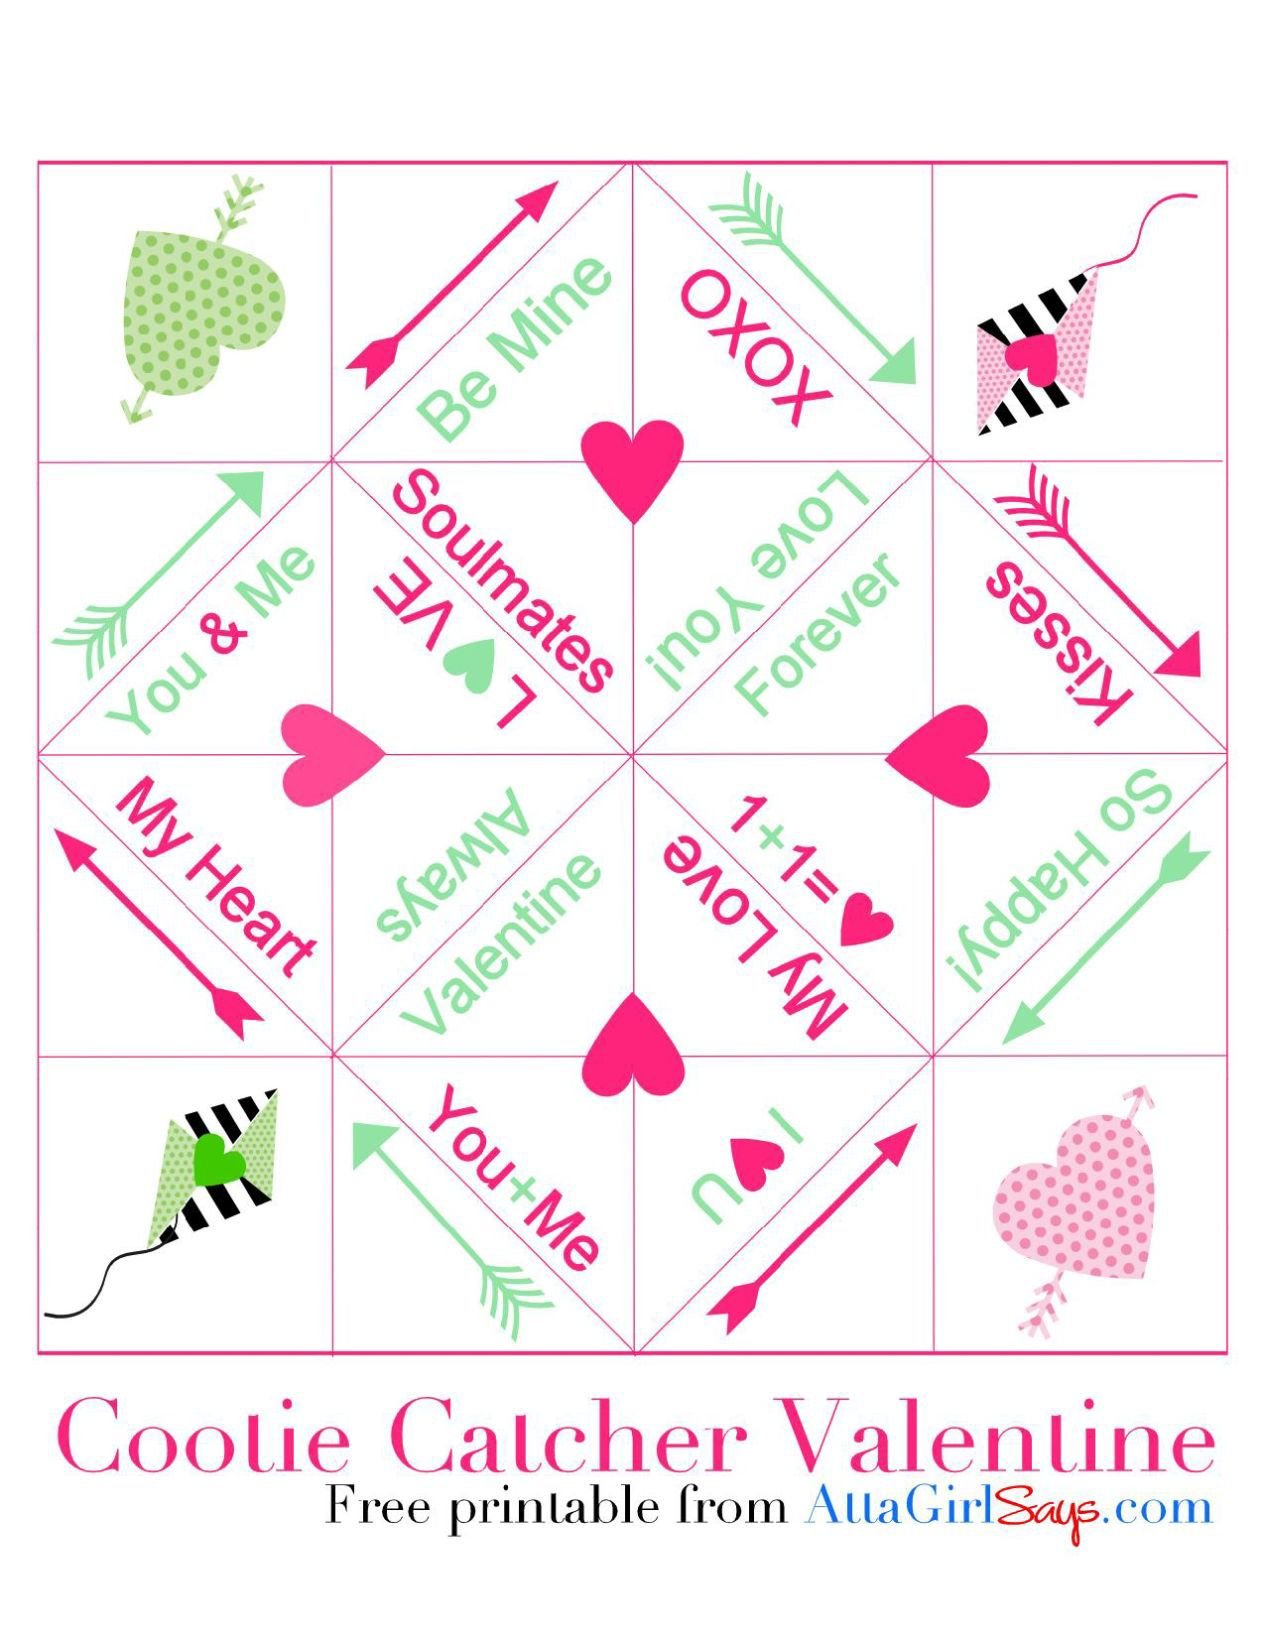 photograph regarding Cootie Catcher Printable named printable-valentine-cootie-catcher.pdf